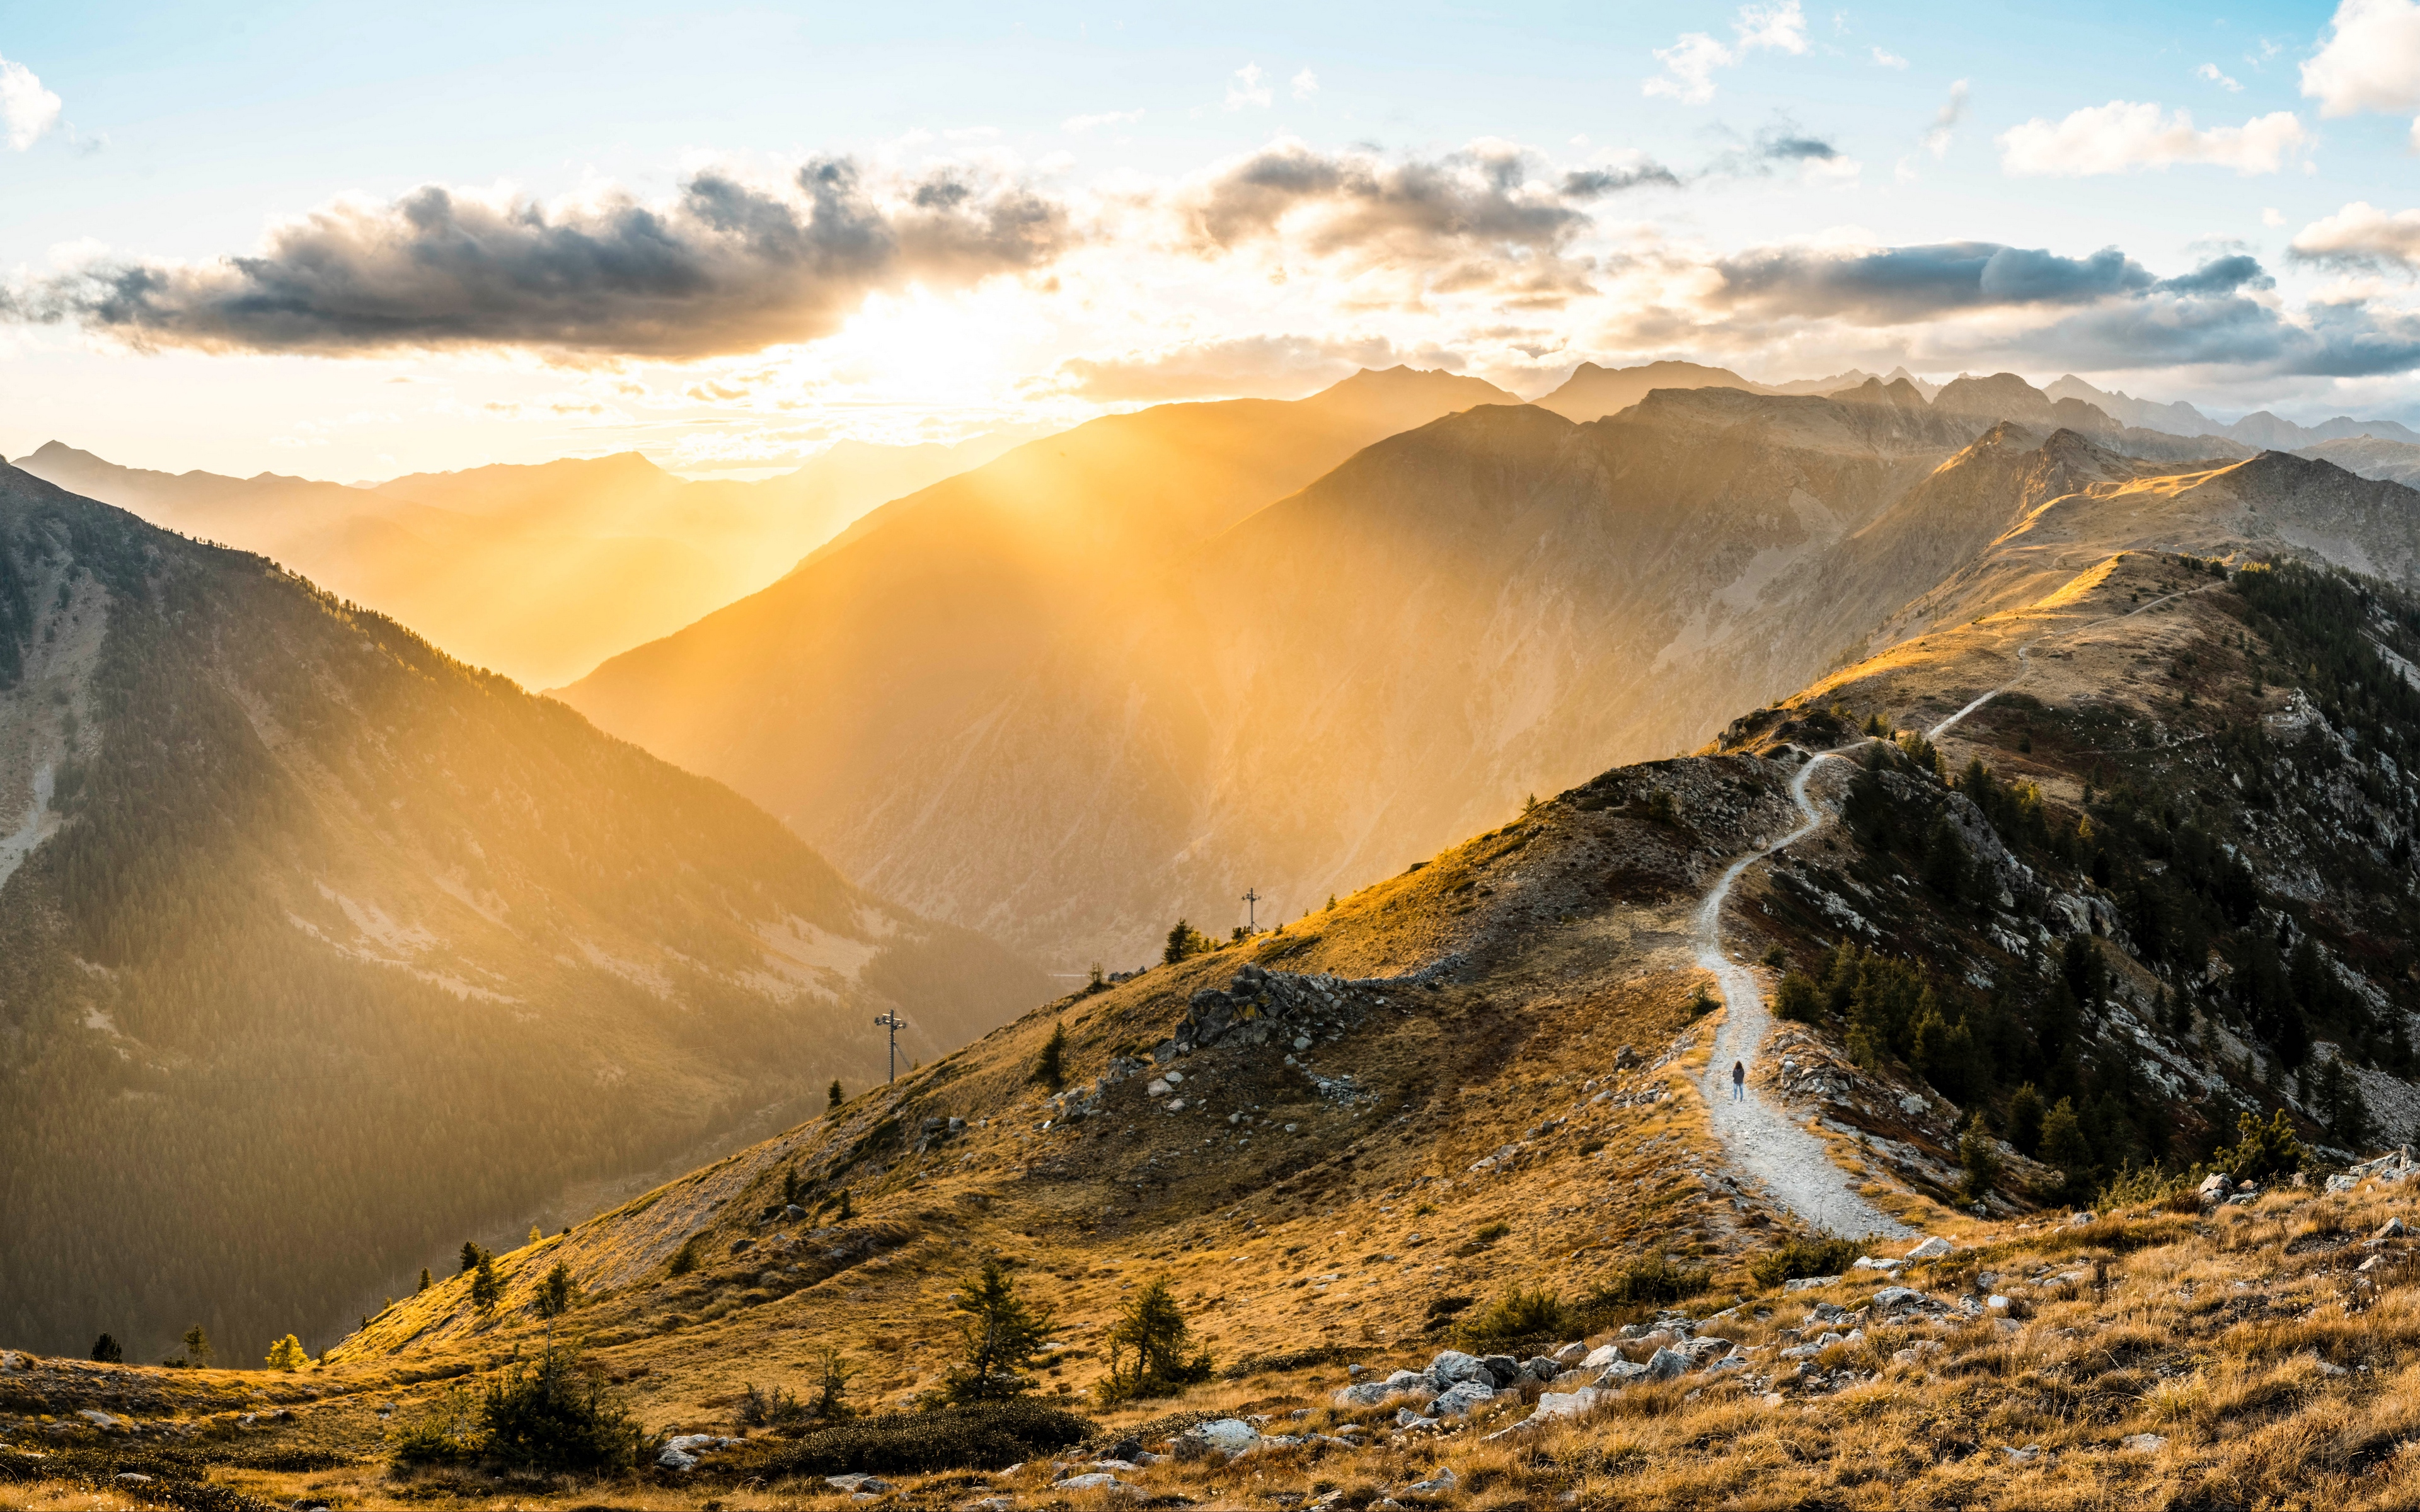 4k the path of the mountain wallpapers high quality download free - Background images 4k hd ...